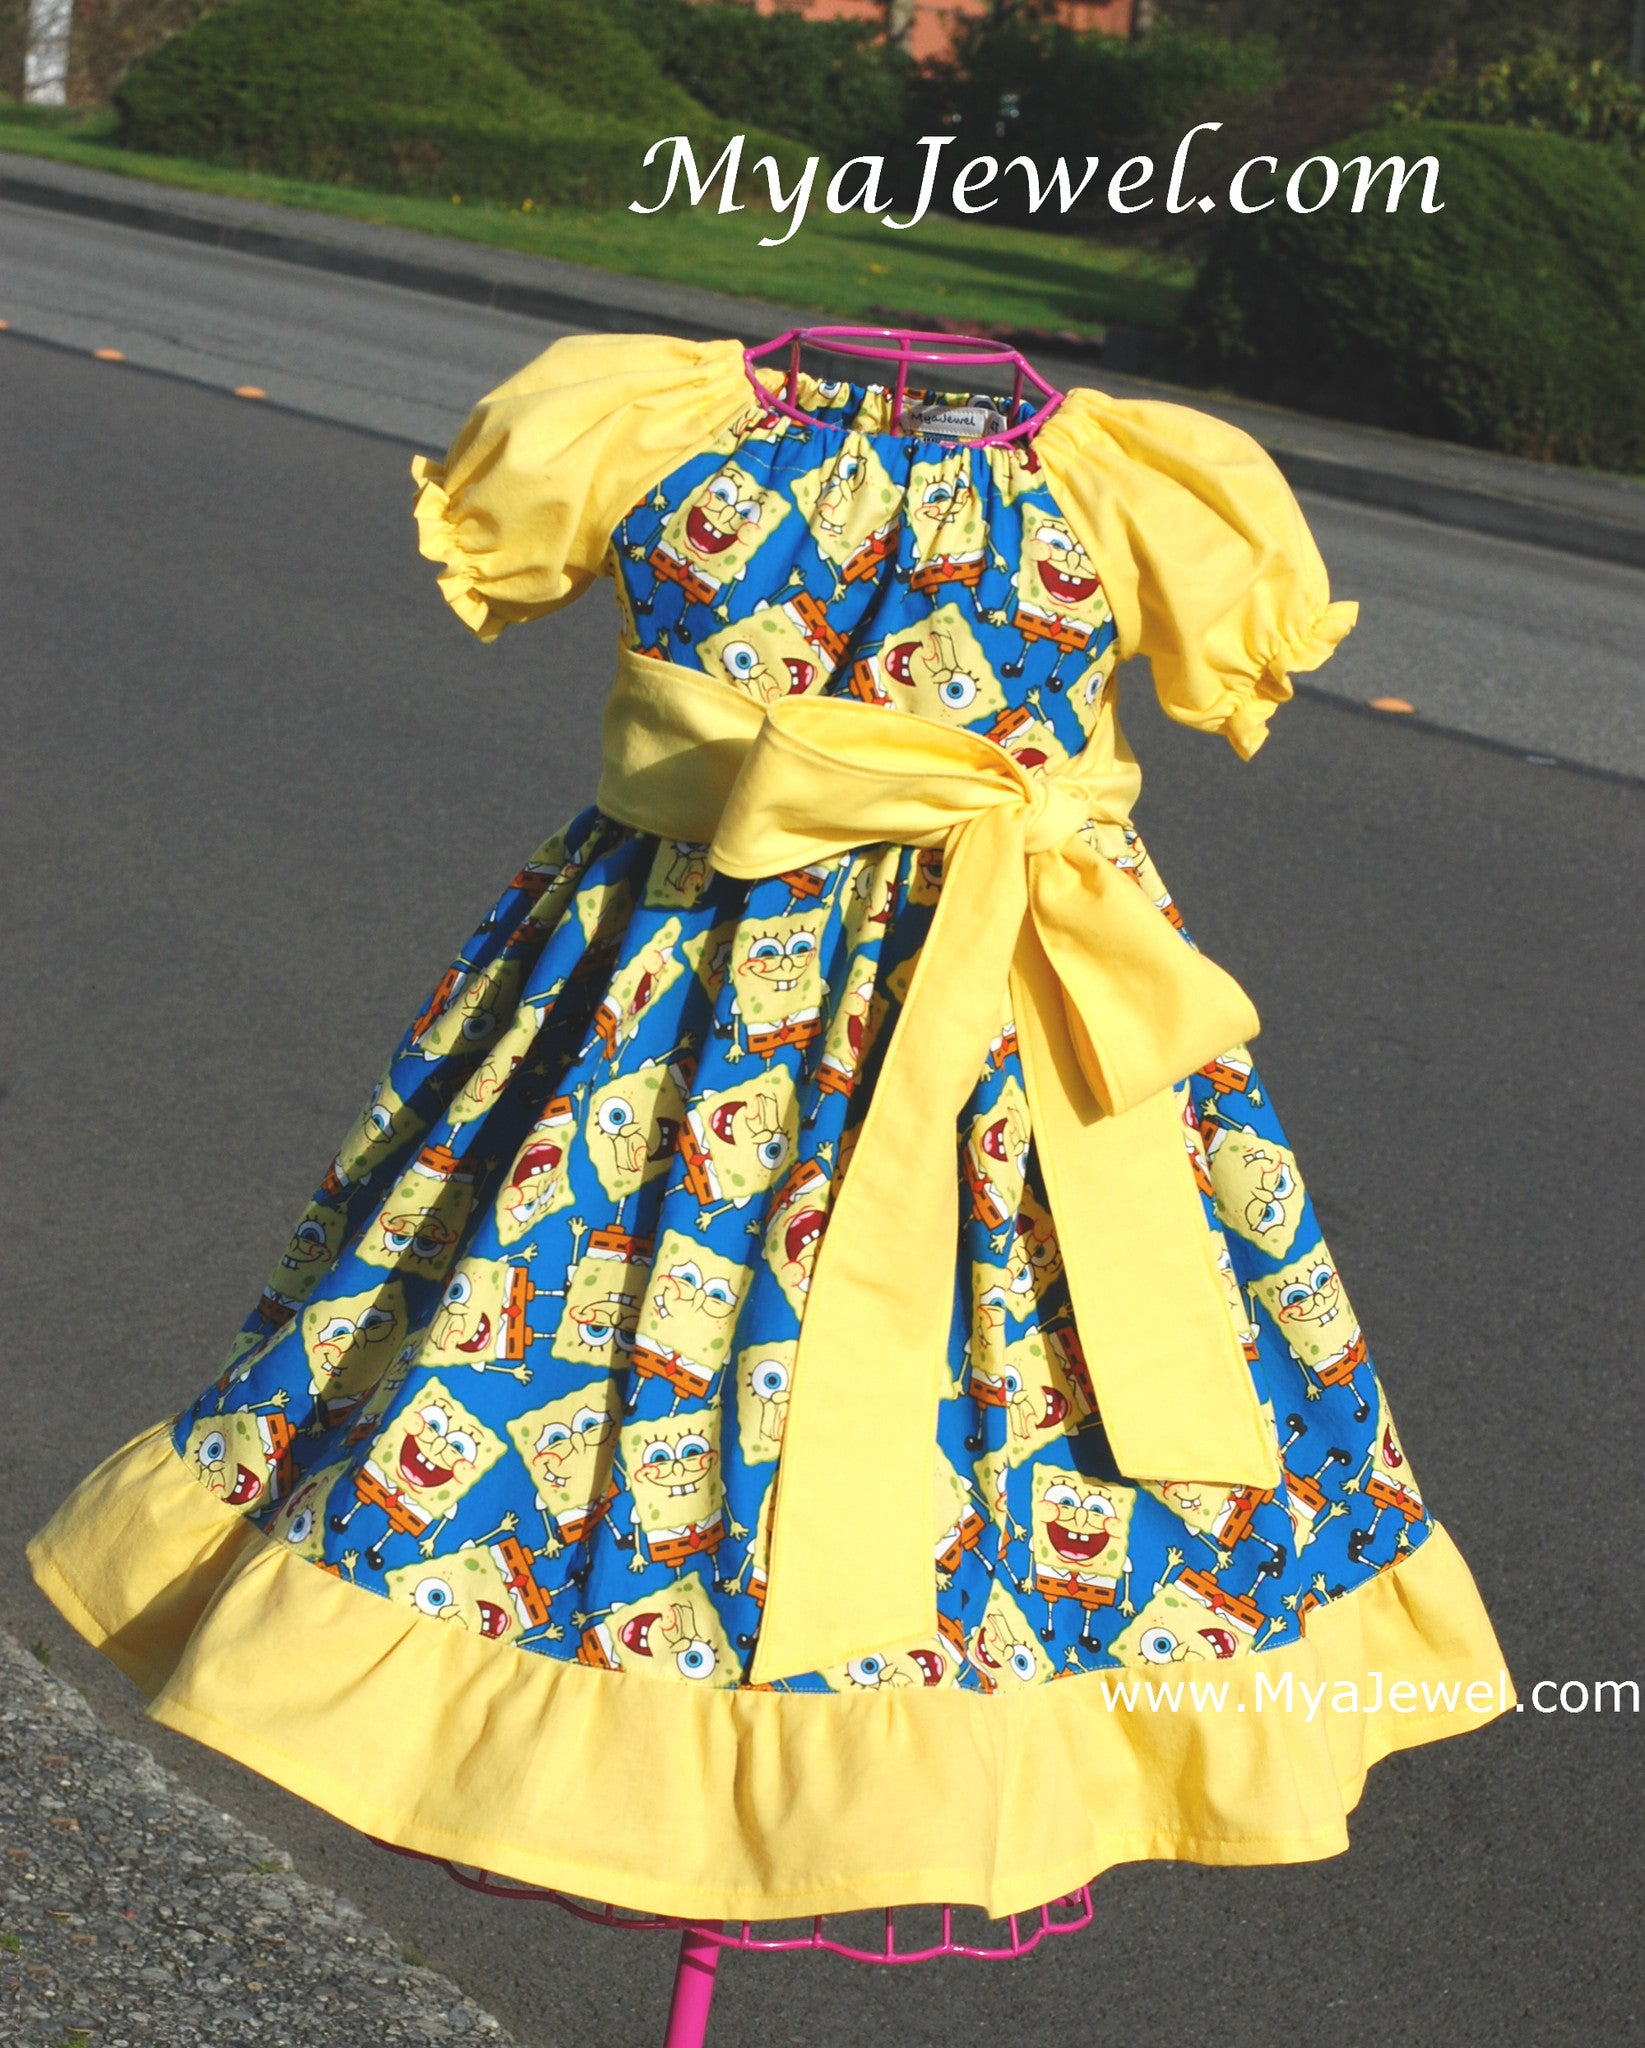 Ruffle Dress made with Spongebob Fabric with removable Sash